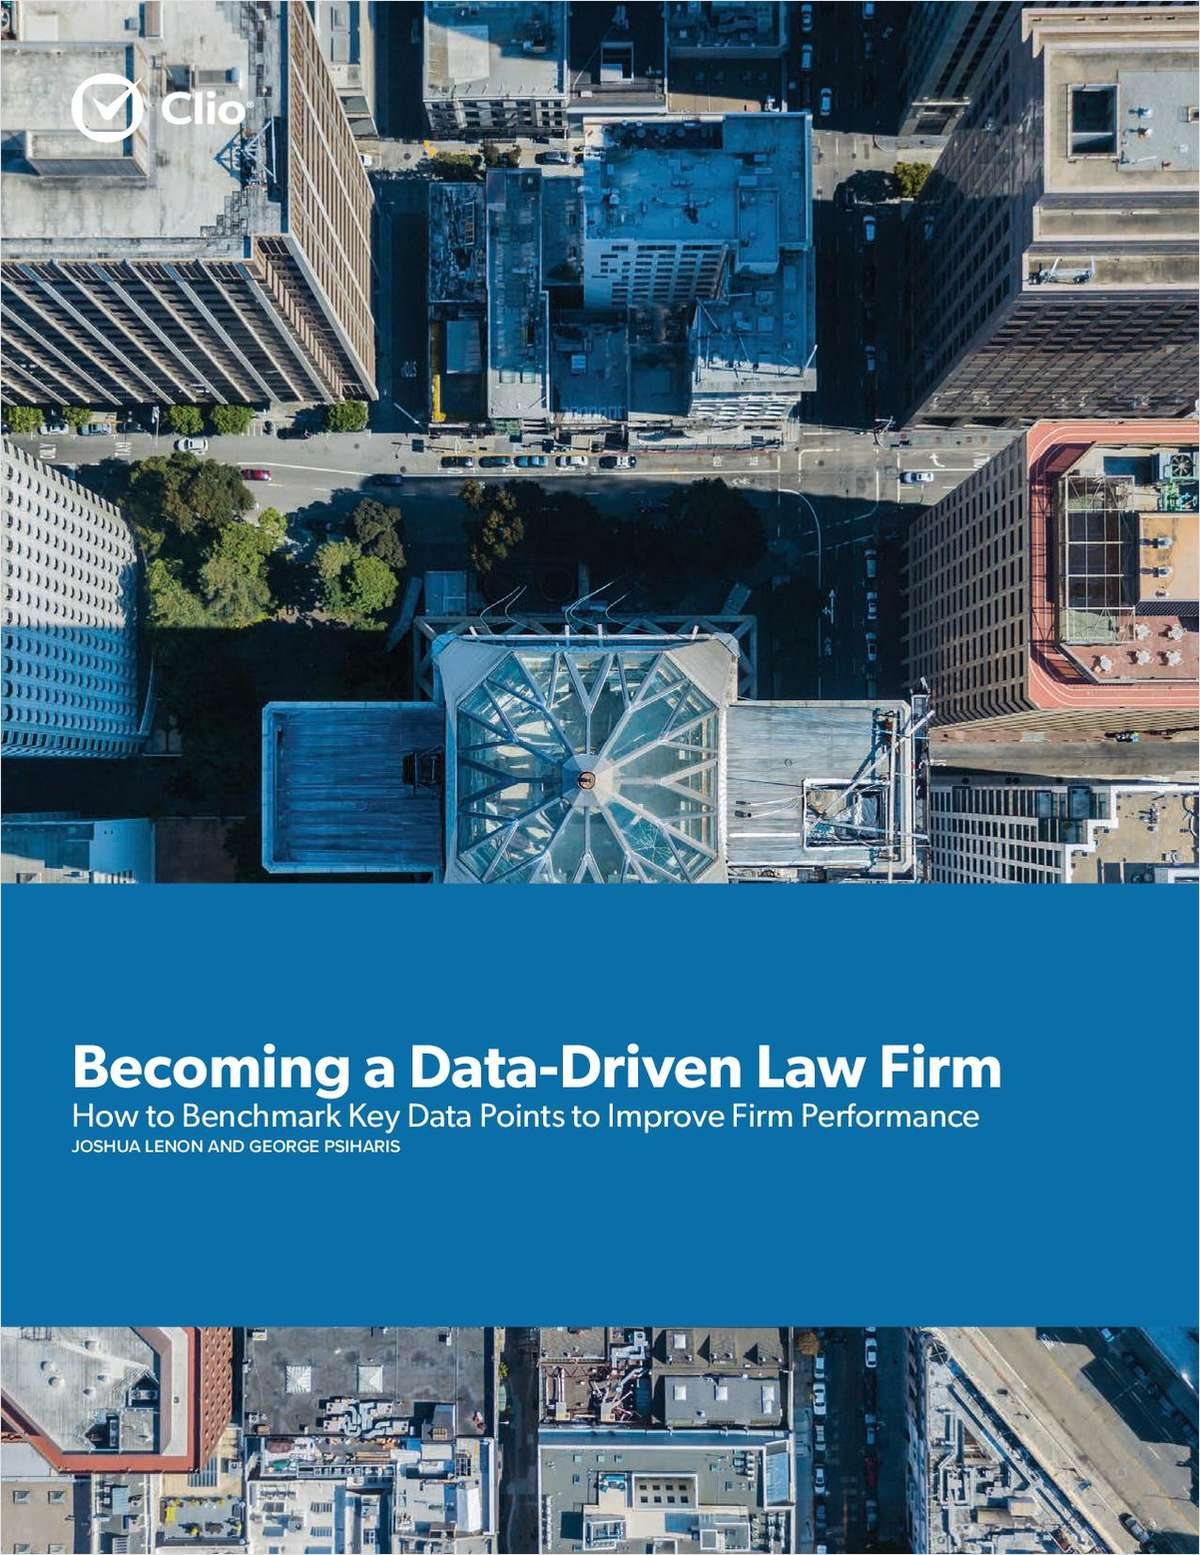 How to Become a Data-Driven Law Firm